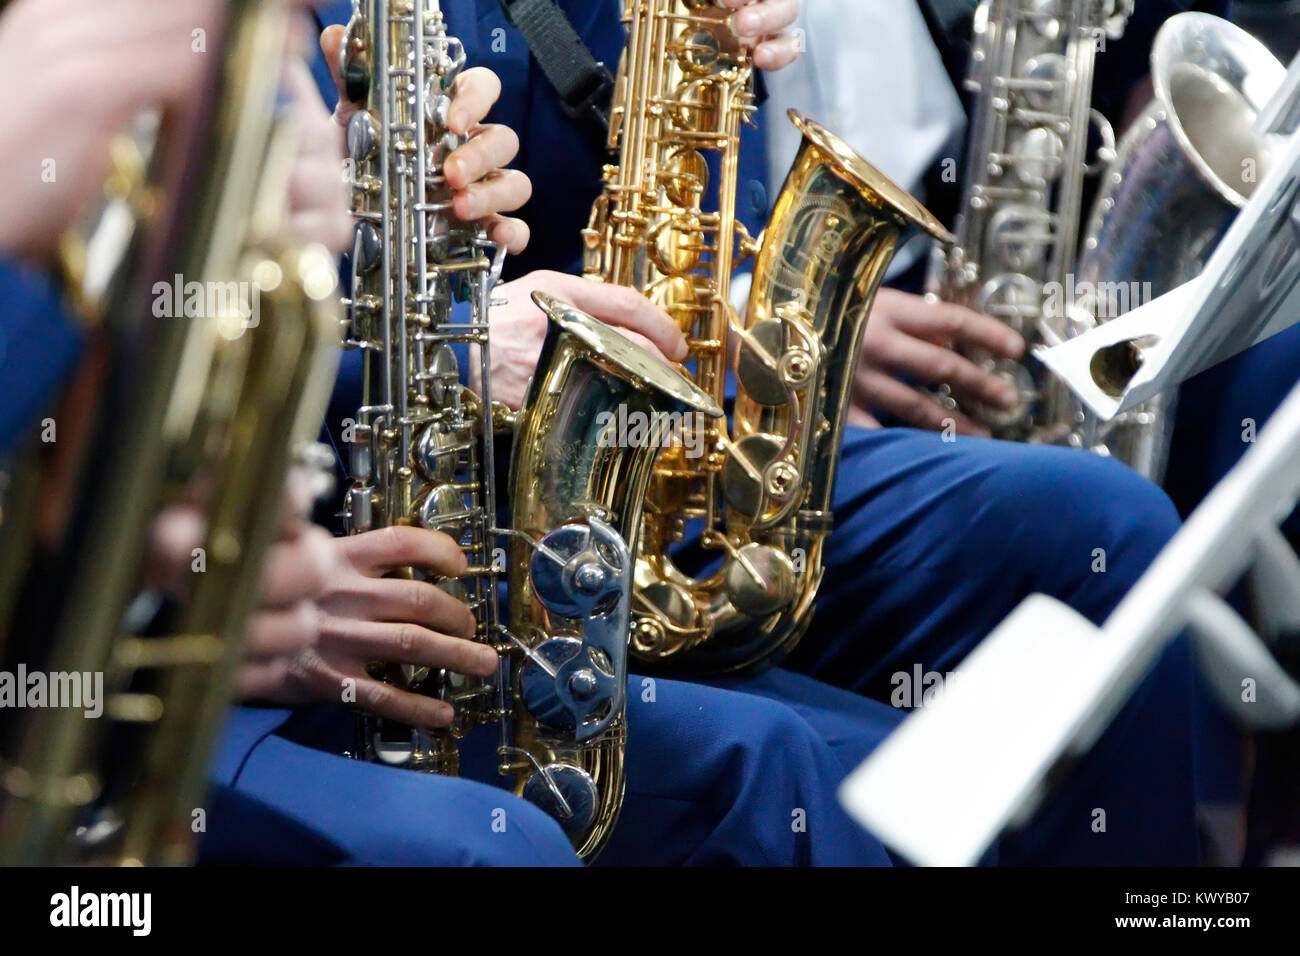 Belarus, Gomel, the performance of the Gomel city orchestra. March 29, 2017.Saxophones.Play in the orchestra. - Stock Image